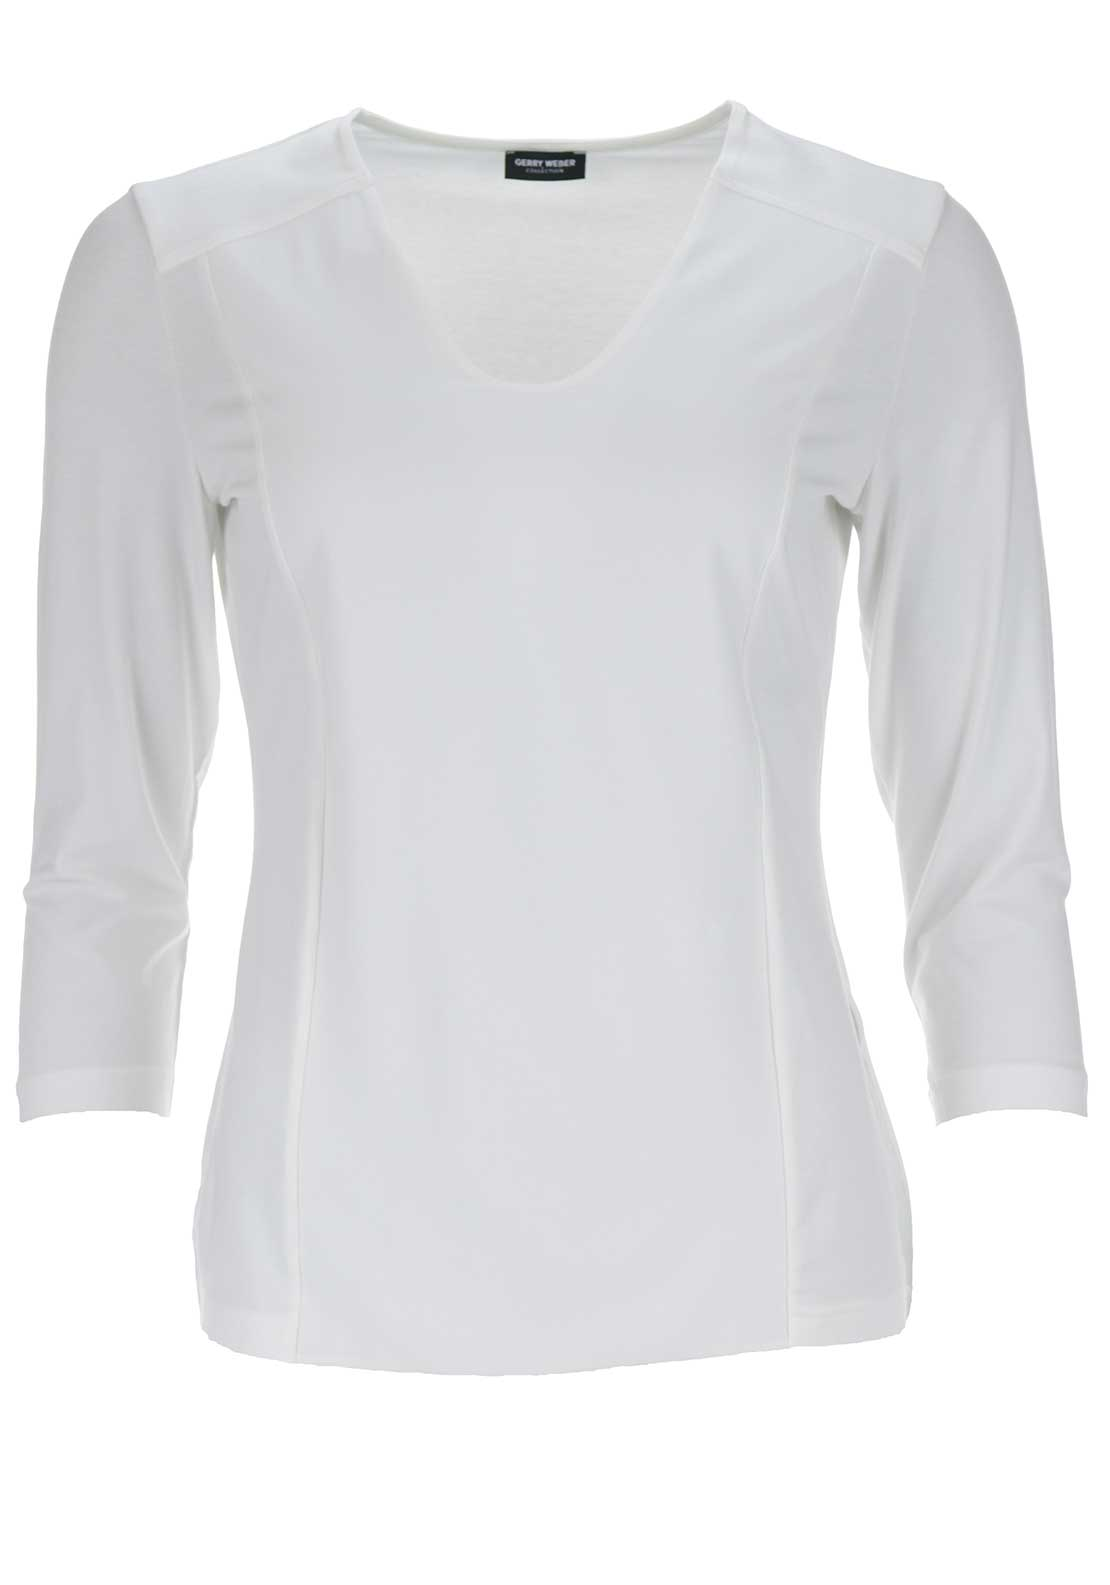 Gerry Weber V-Neck Cropped Sleeve Top, White